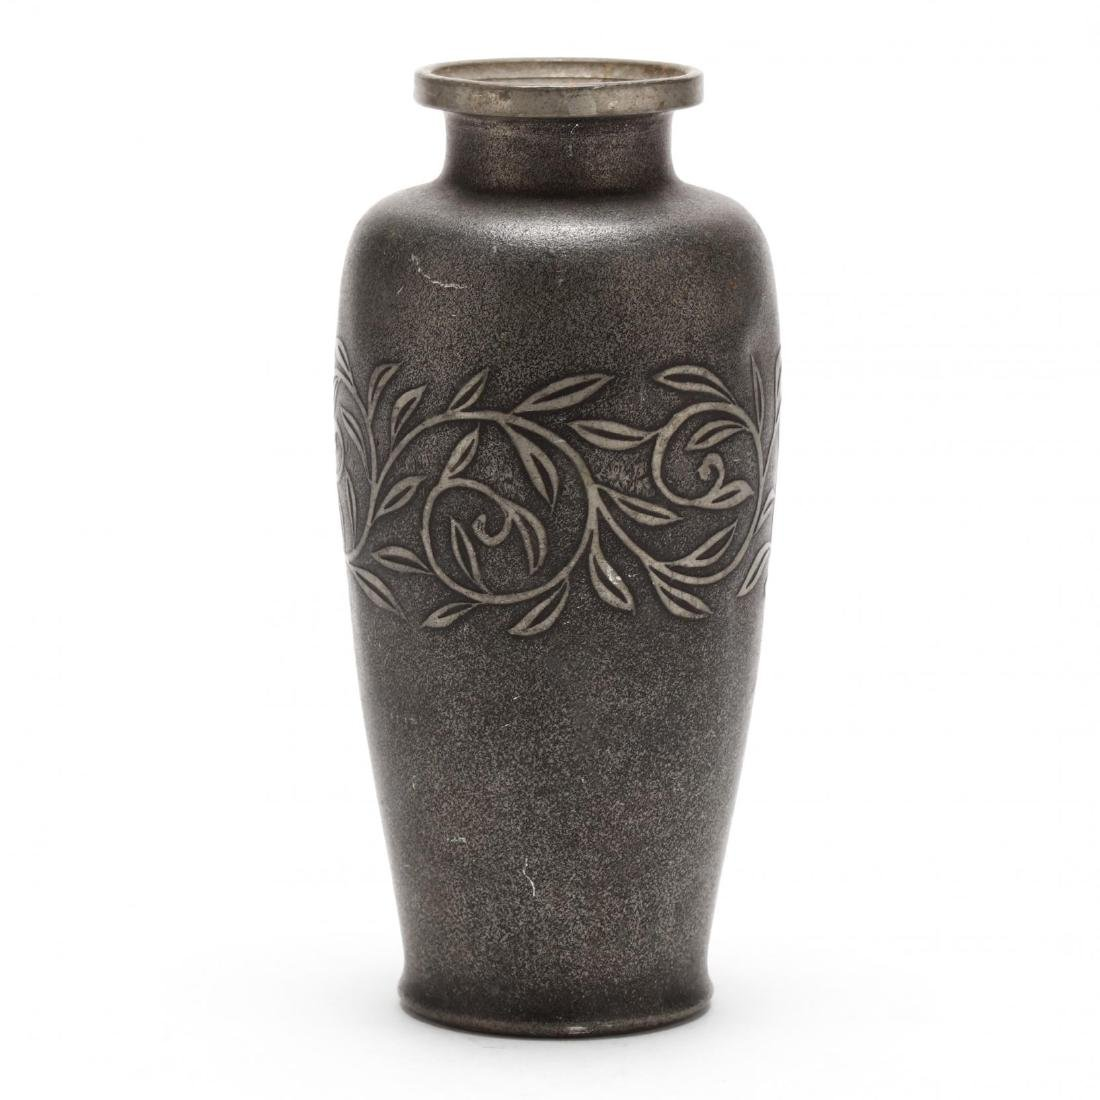 An Asian Pewter Vase with Vine Decoration